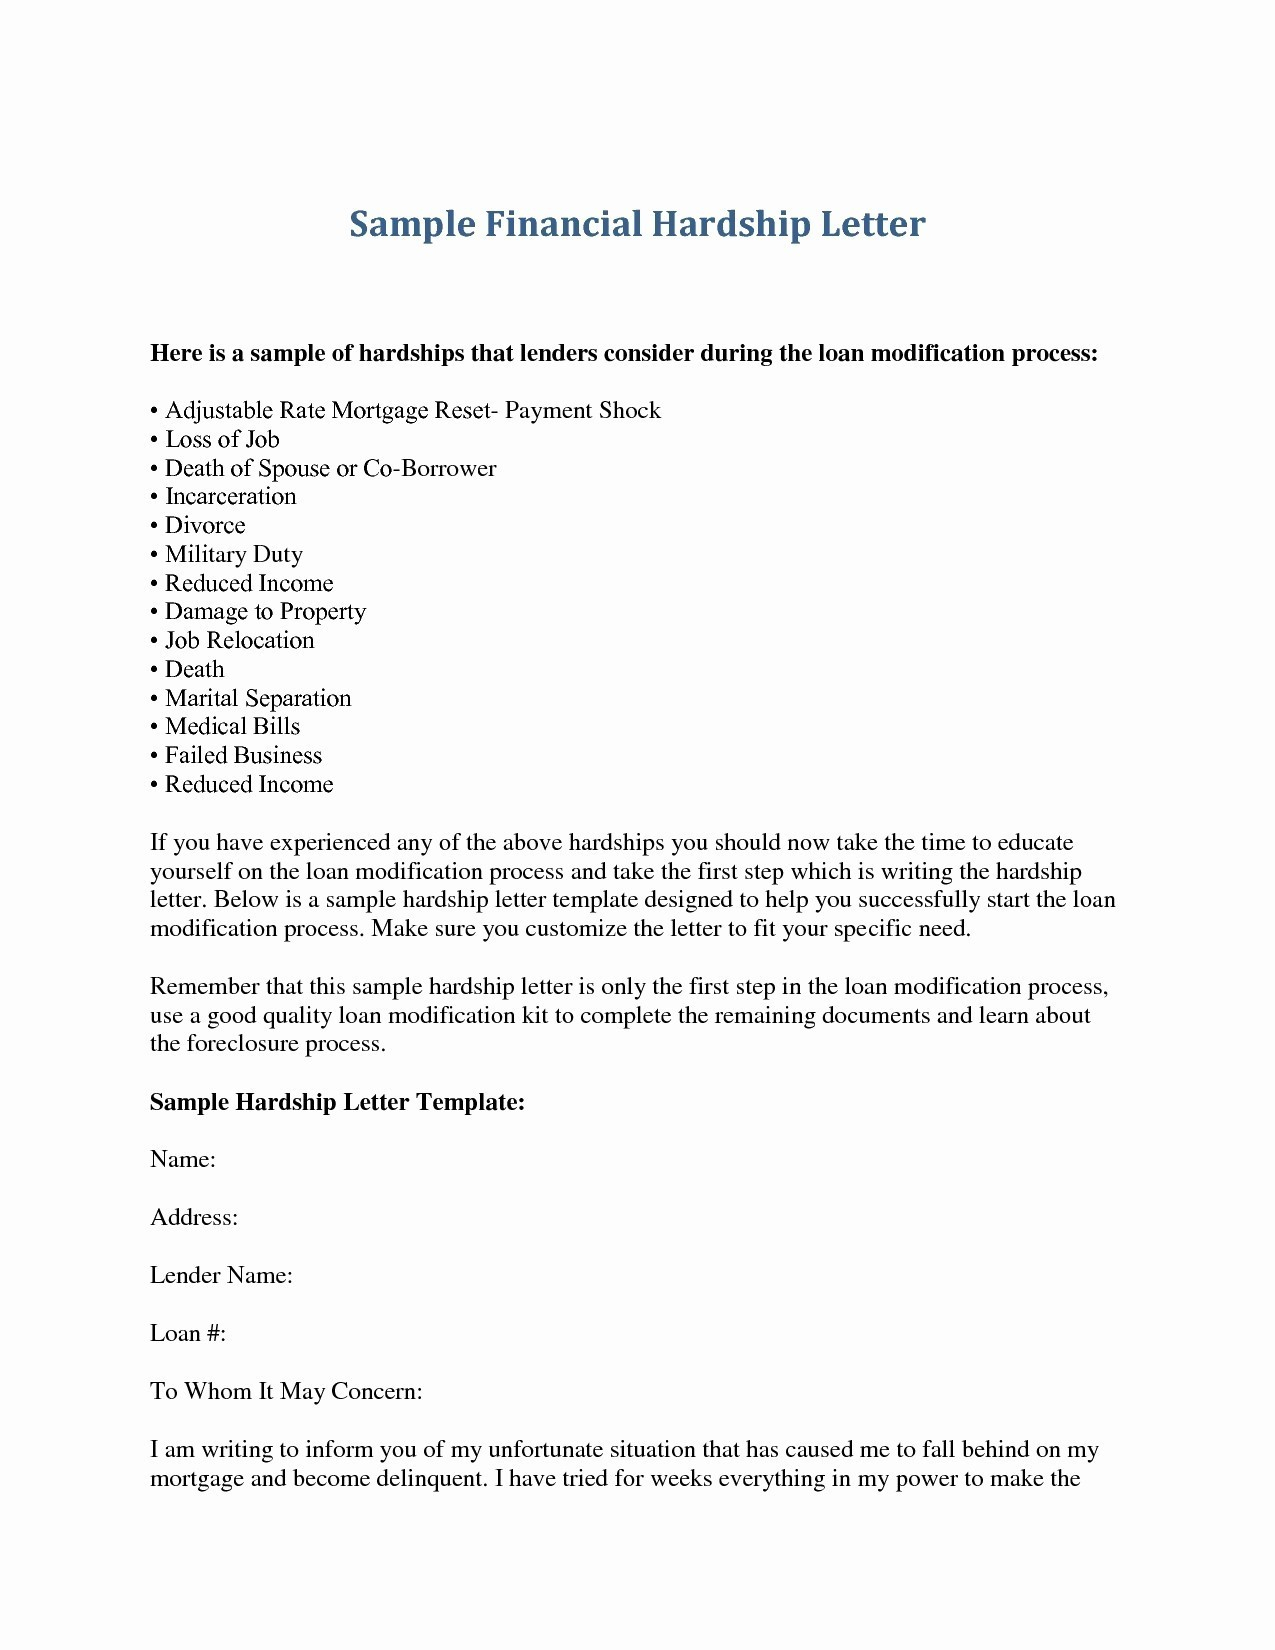 payment shock letter template Collection-Mortgage Payment Shock Letter Template Sample School Character Certificate Archives Refrence Sample How to Write 2-s